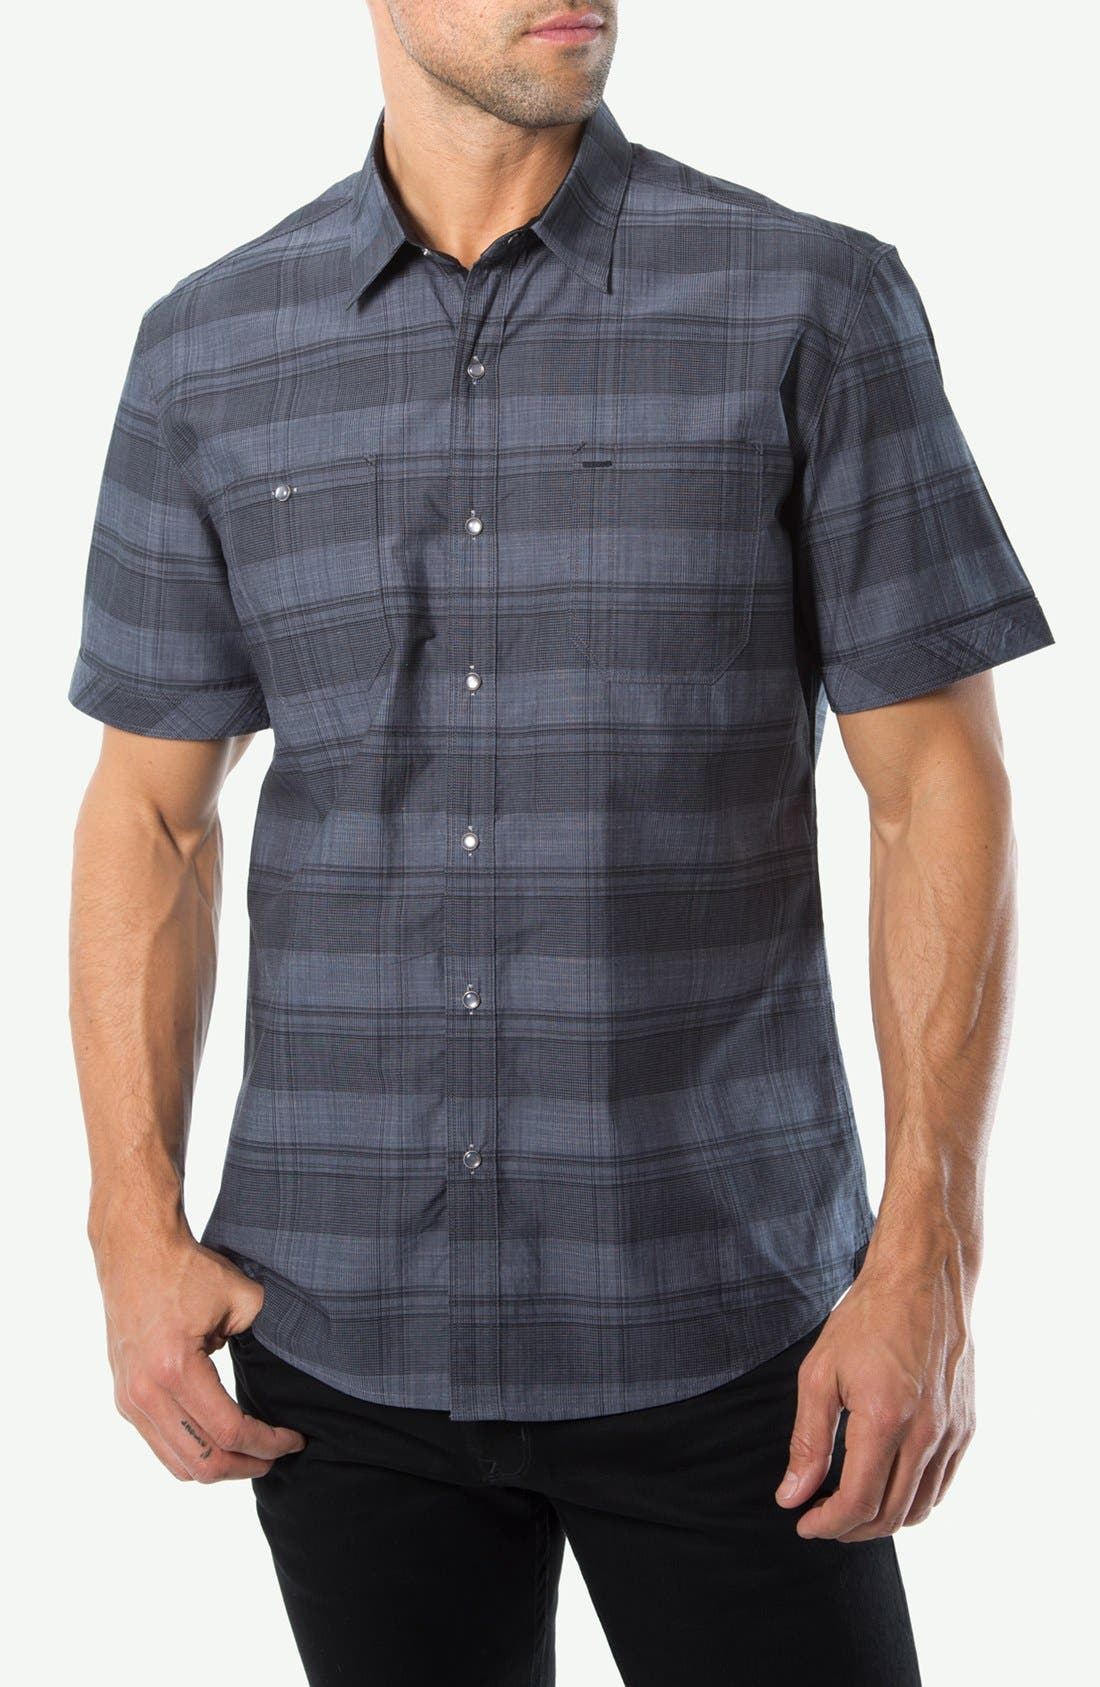 Main Image - 7 Diamonds 'We Are Young' Short Sleeve Plaid Shirt